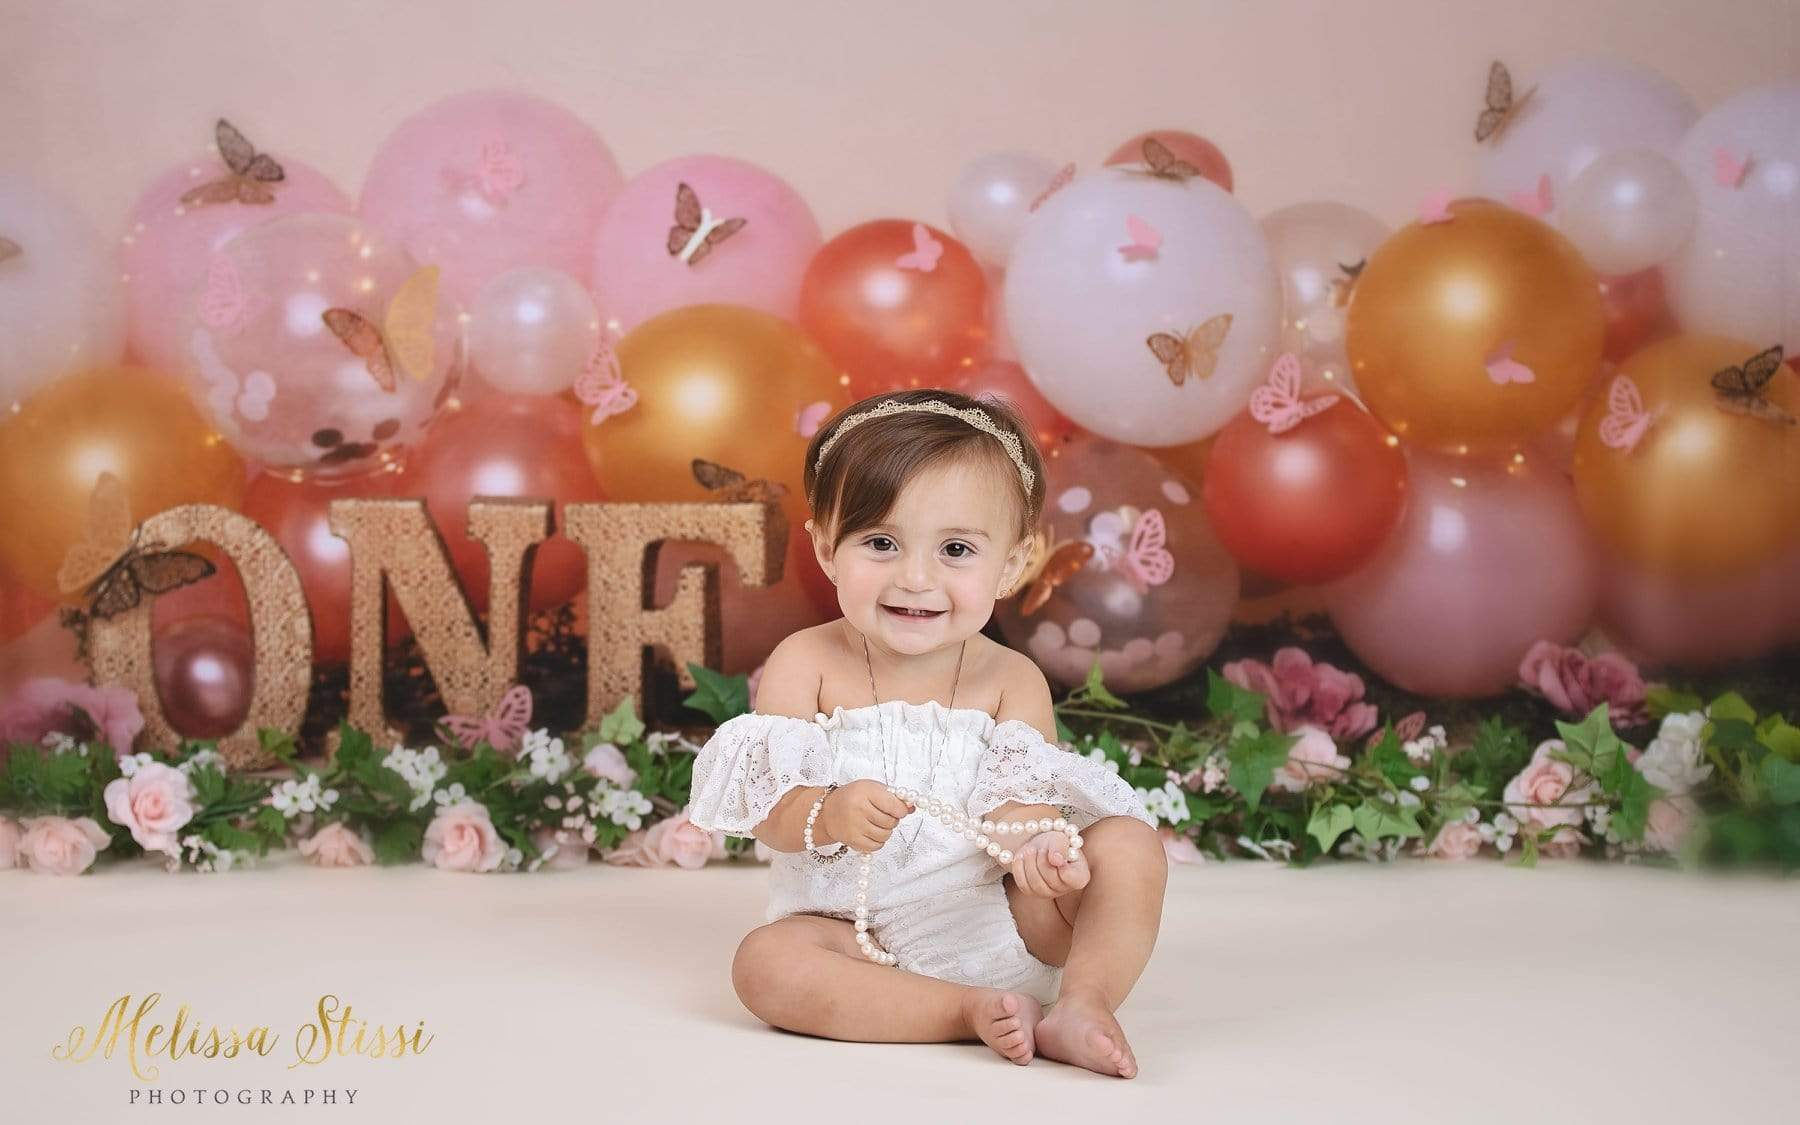 Load image into Gallery viewer, Katebackdrop£ºKate Birthday Cake Smash Balloon with Butterfly Backdrop for Photography Designed by Cassie Christiansen Photography